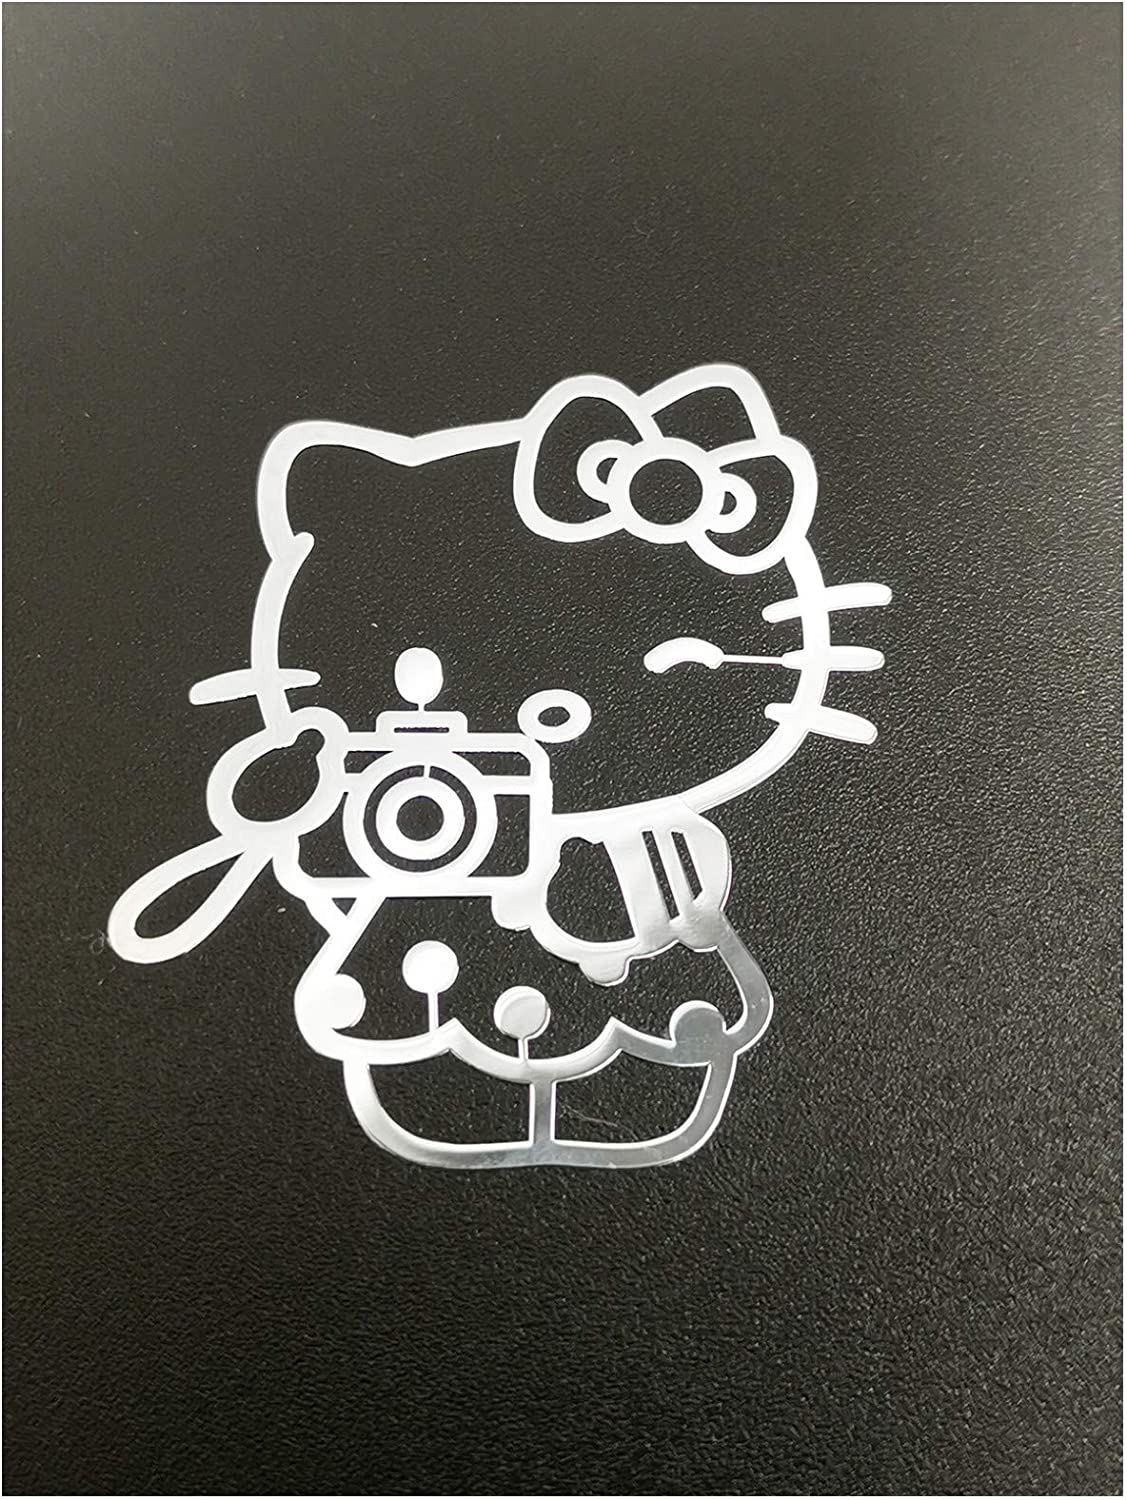 Wallner 2 pcs Metal Adhesive Hello Kitty Badge Chrome Decal Logo Vinyl Sticker Cellphone Decal Stickers for Laptop Cellphone car IPAD or Others (Silver, A2)